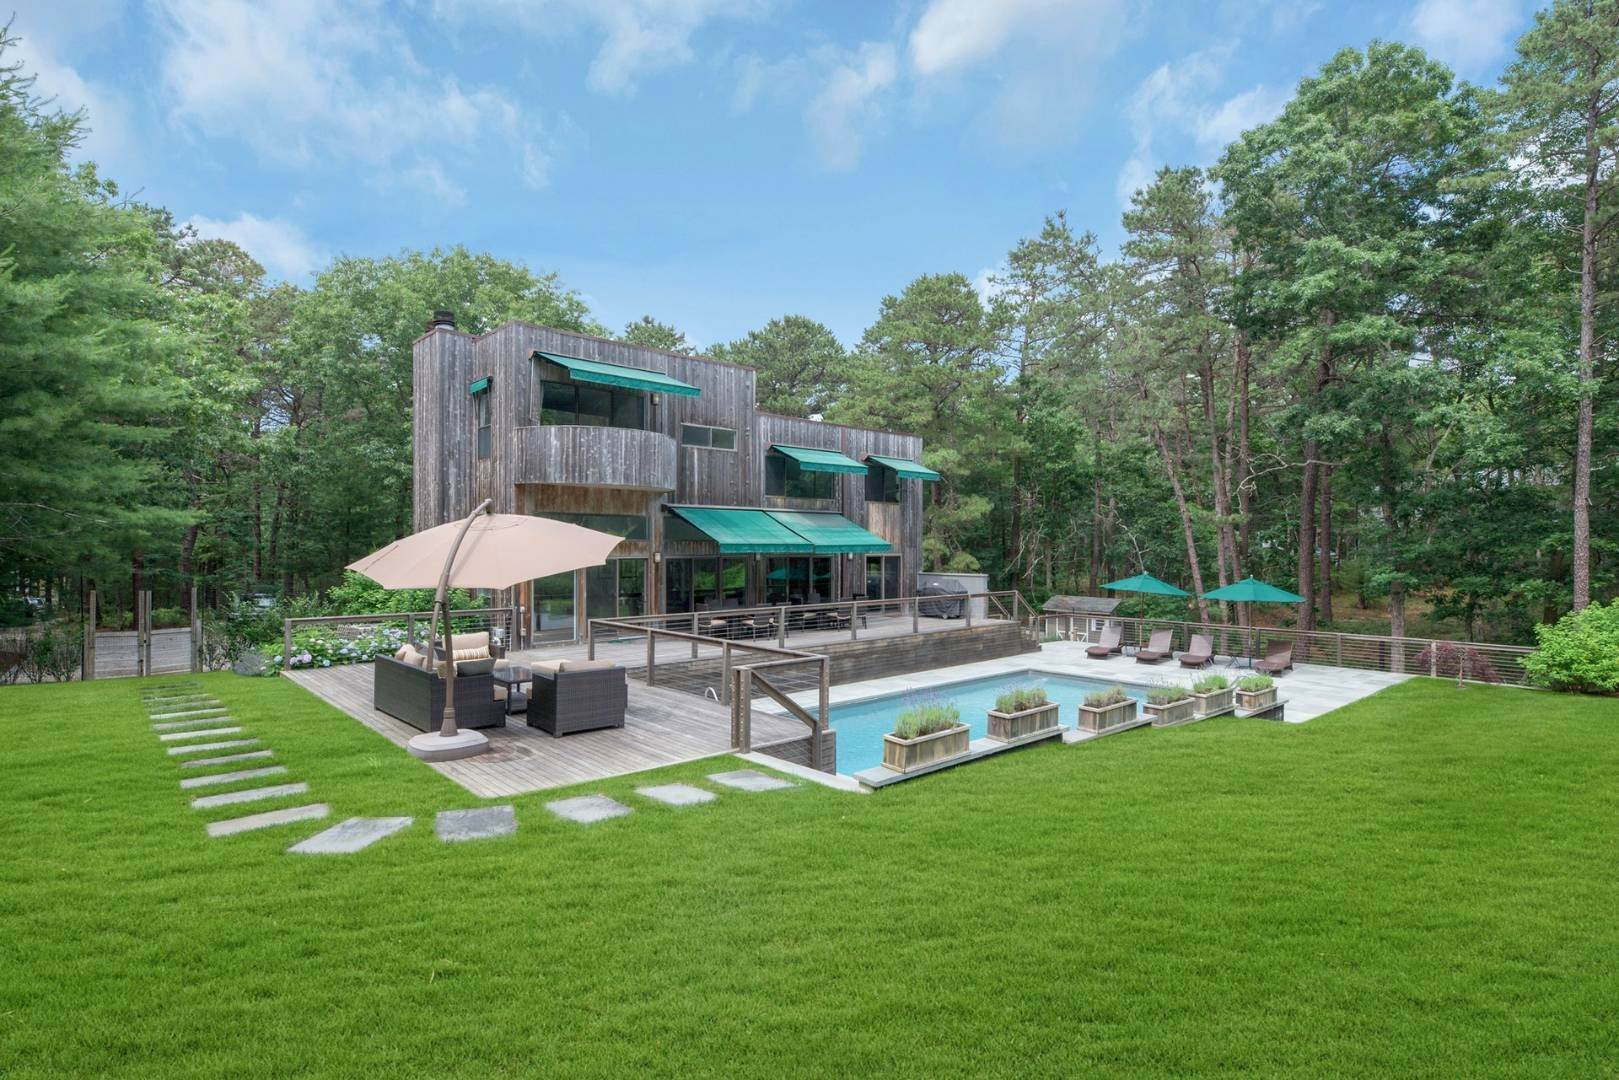 Single Family Home at Gorgeous New Rental Listing East Hampton, NY 11937